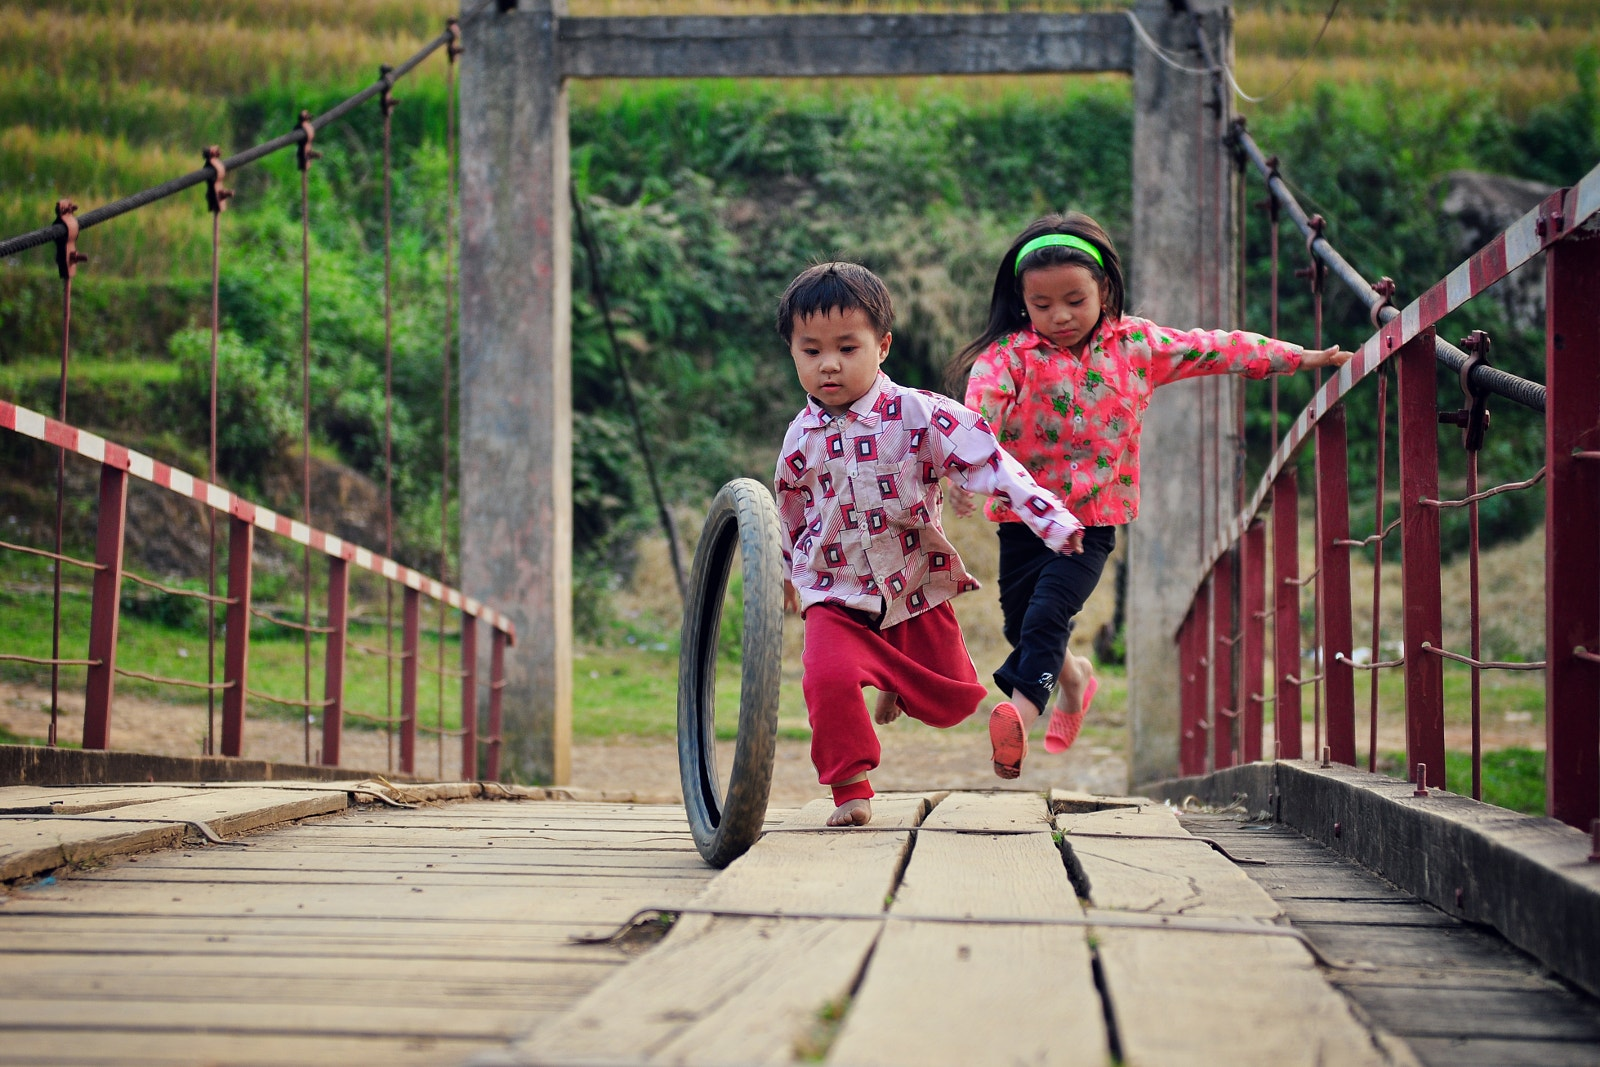 20 Photos that Celebrate Playing Outside